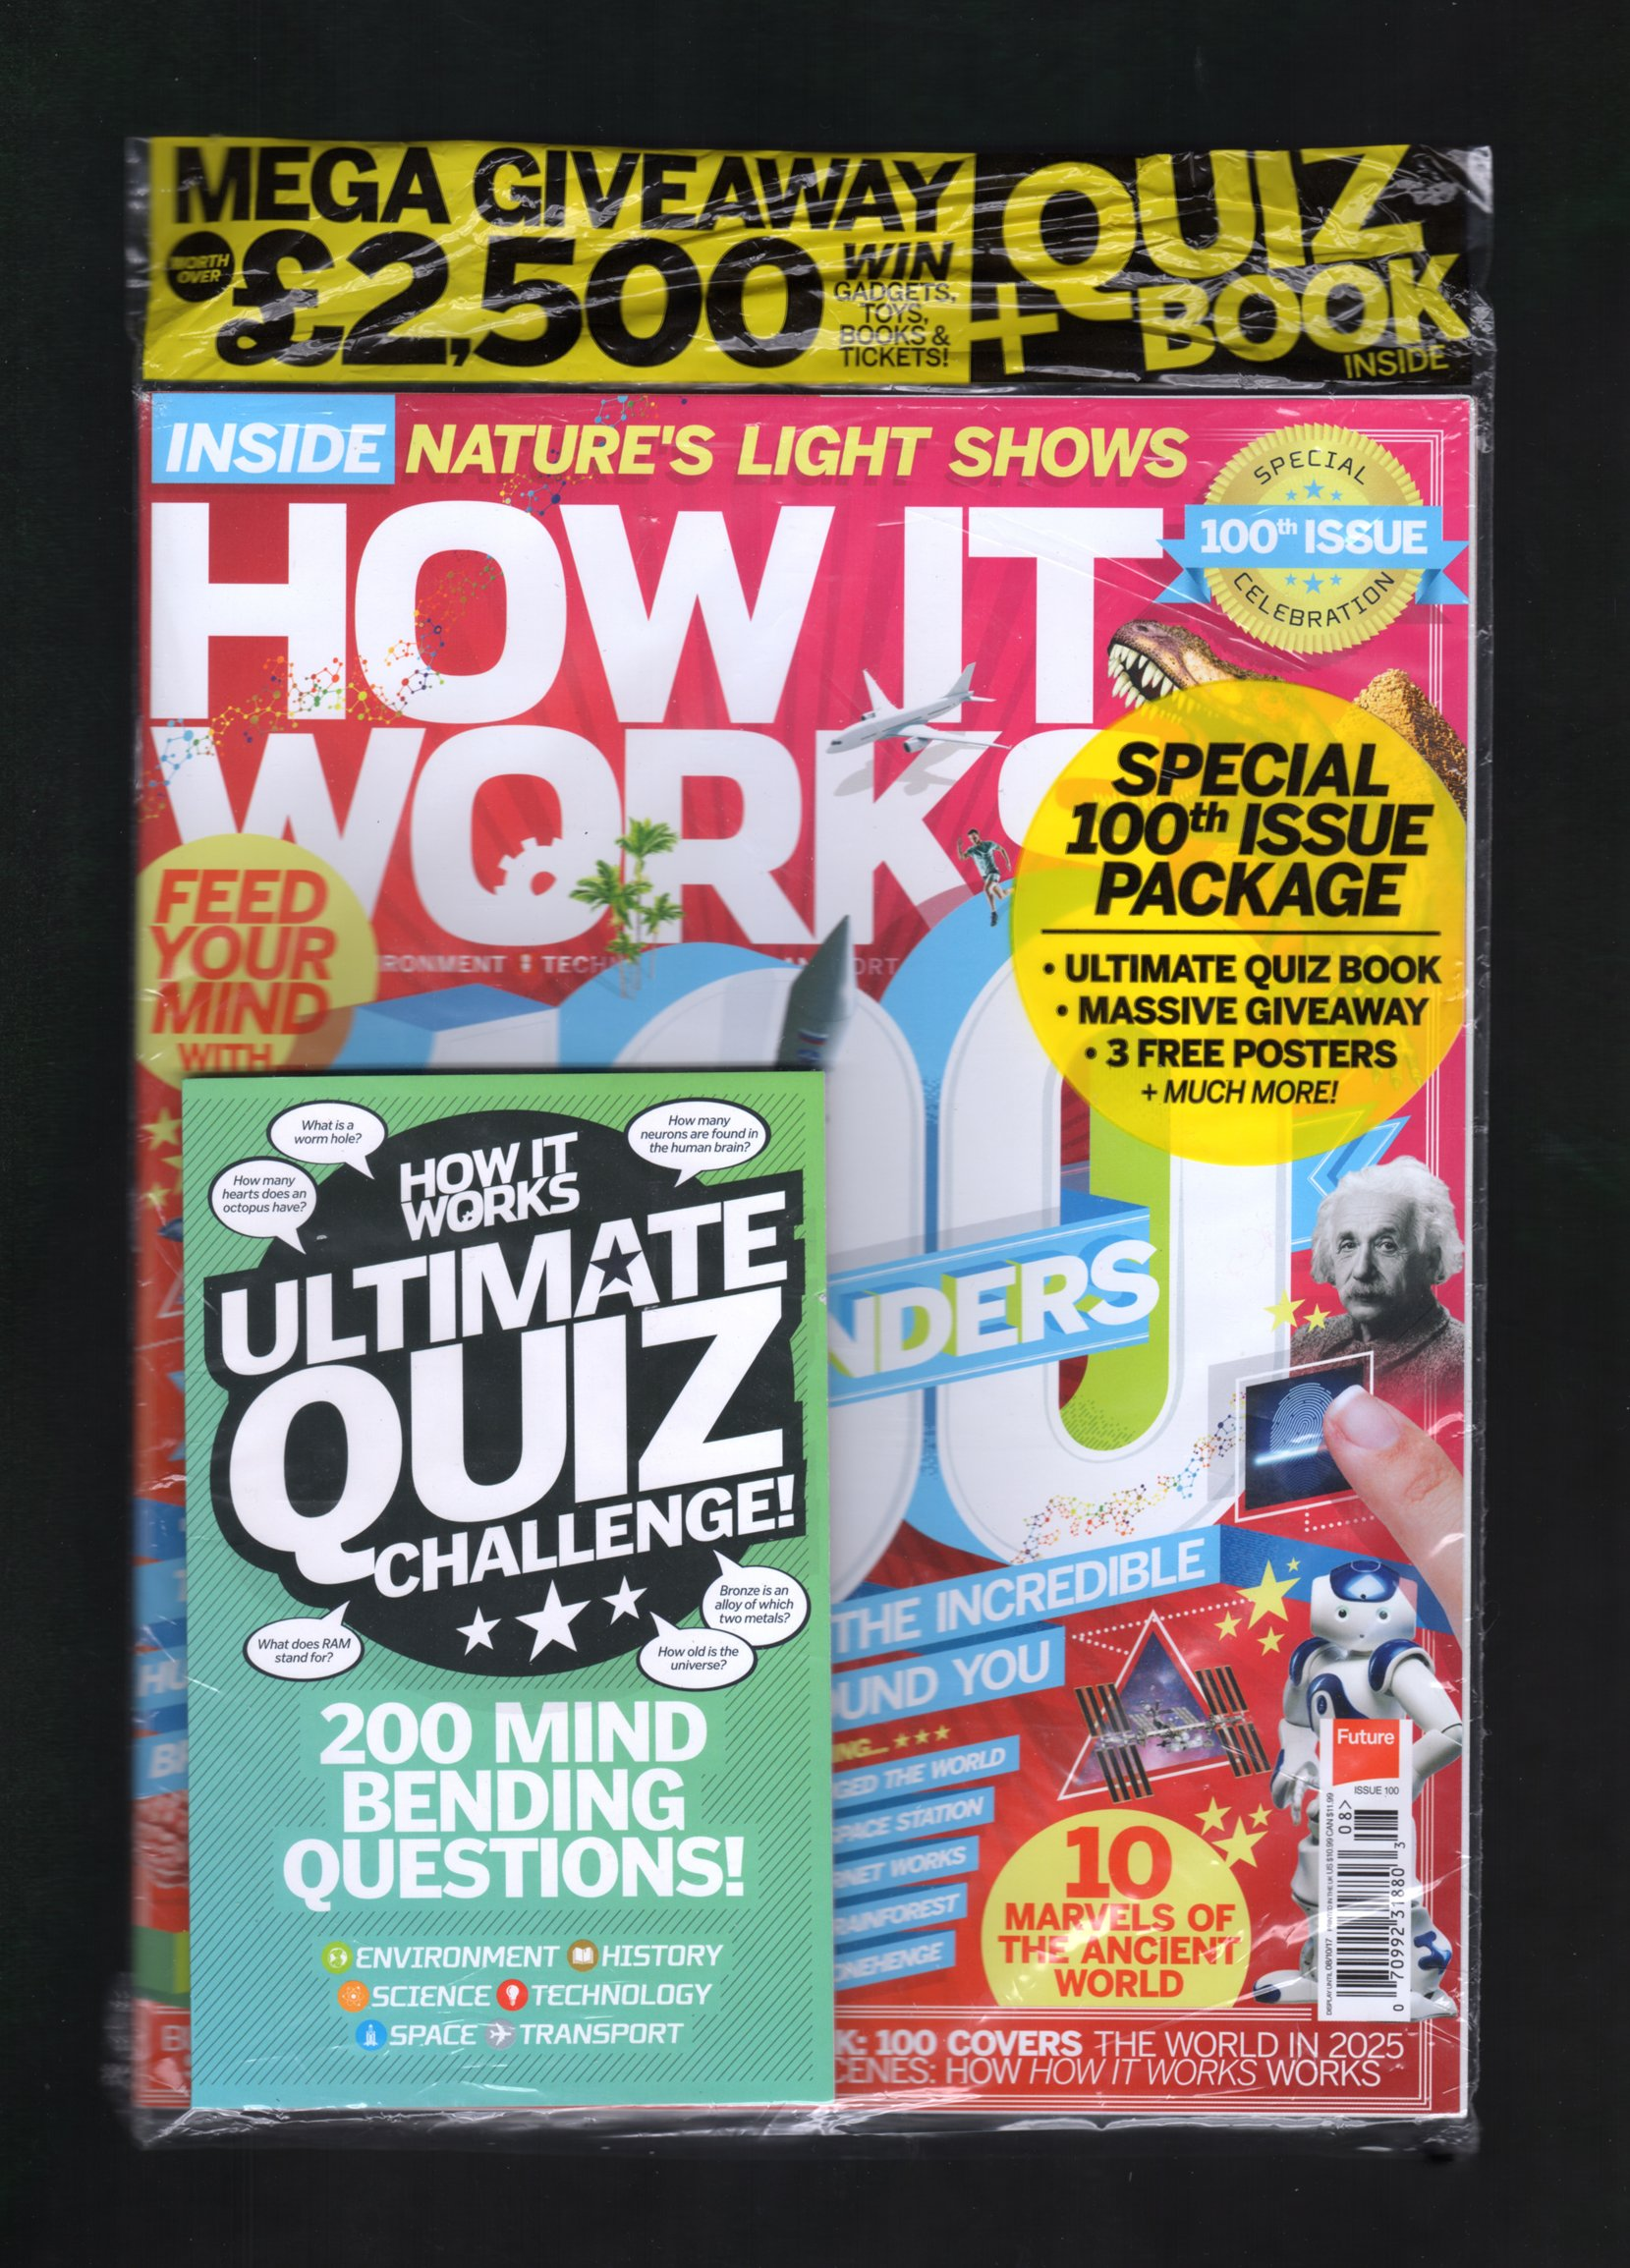 How It Works Issue 100 - Special 100th Issue Package with Ultimate Quiz Book, 3 Posters, Massive Giveaway, More. In Publisher's Original Shipping Bag. Science, Tech, Nature, Computer Games pdf